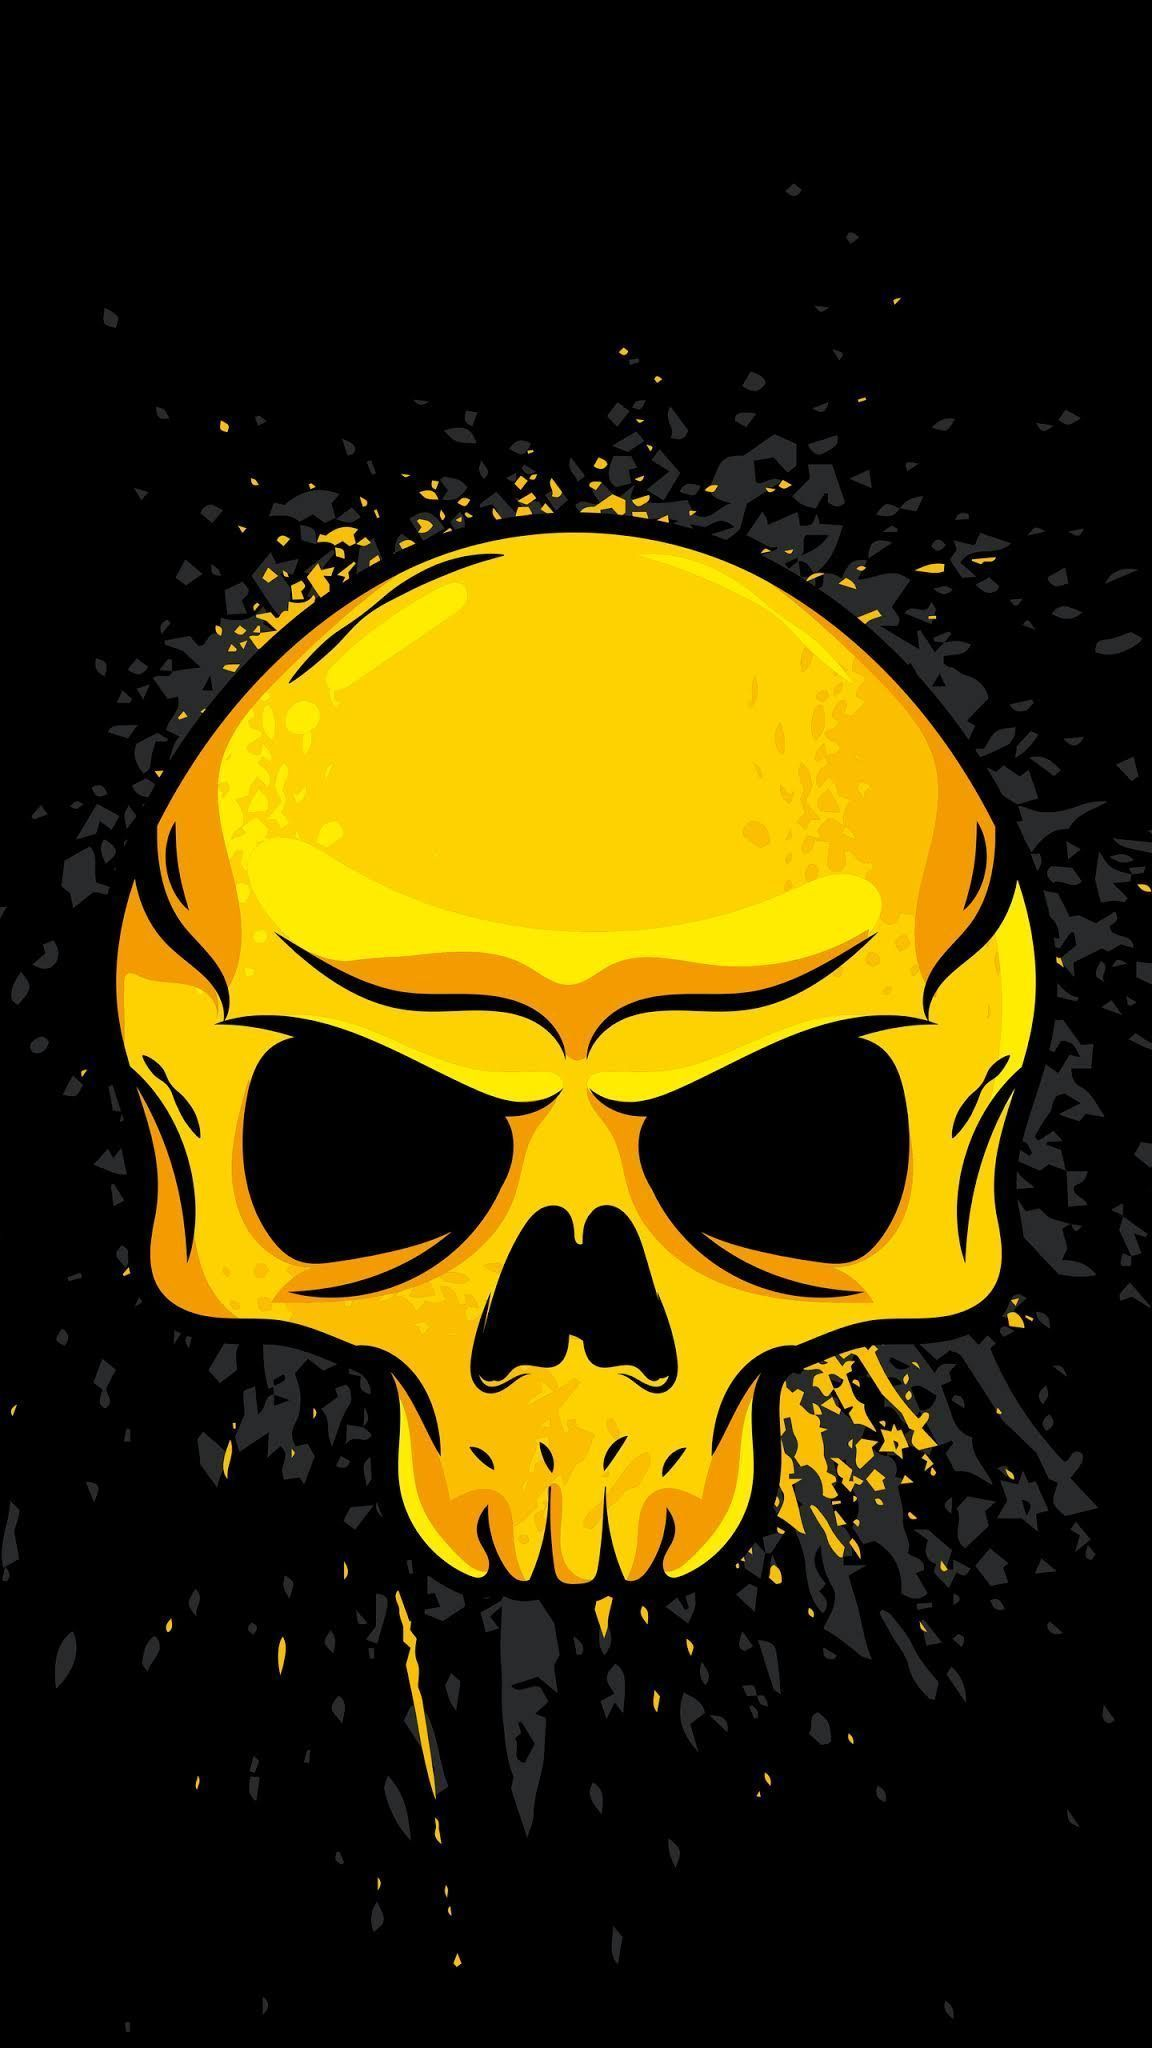 Gold Schädel Minimalist Wallpaper in 2020 Skull